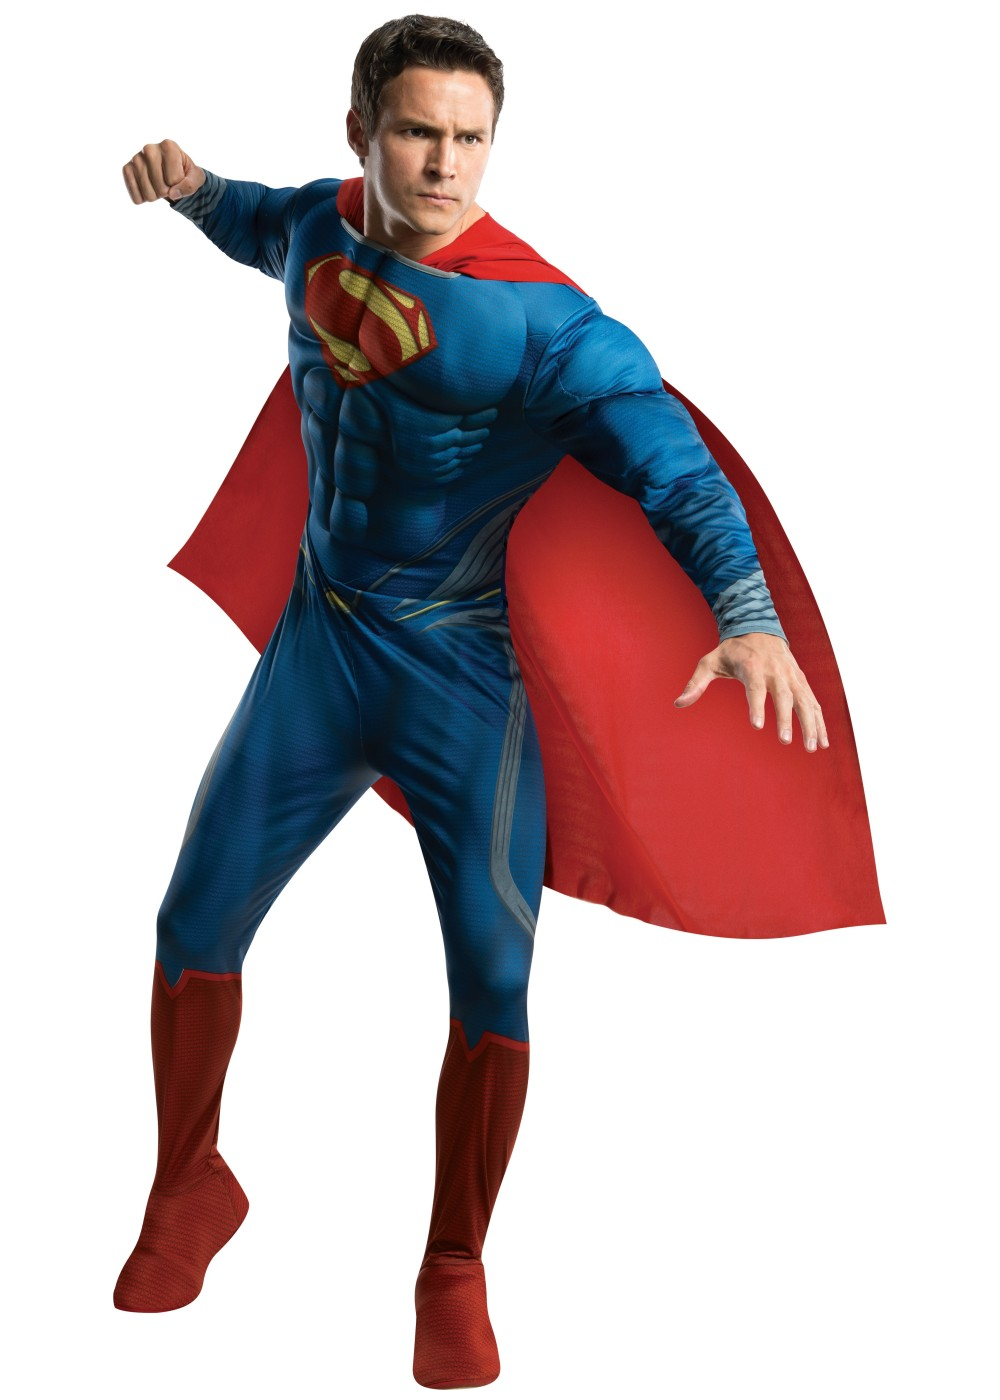 costume maketh a superhero: the importance of disguise